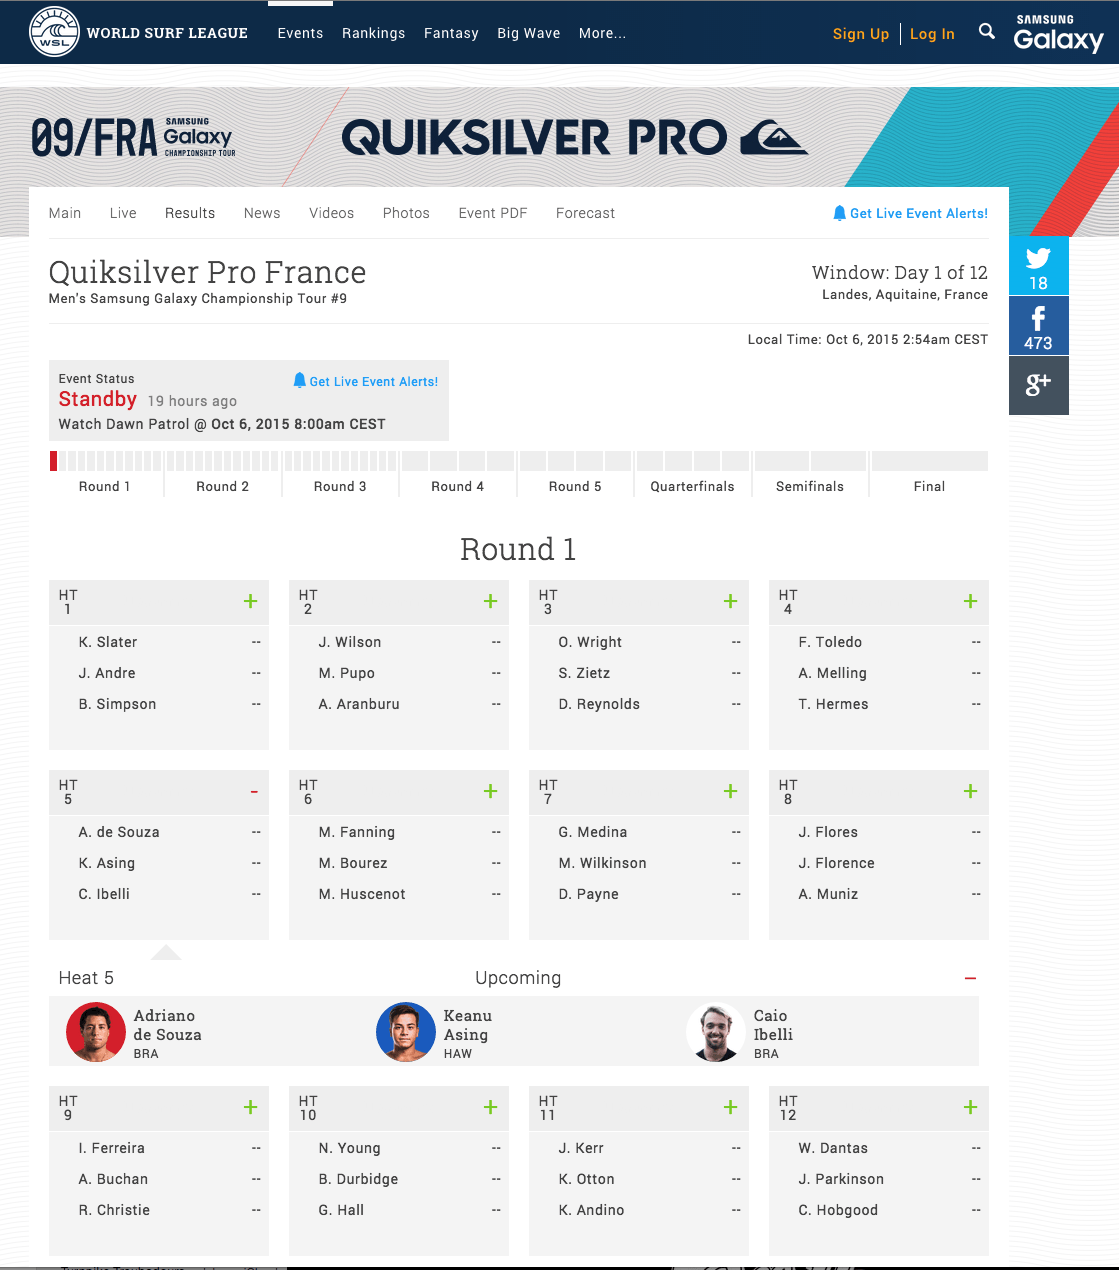 wct-quik-pro-france-caio-ibelli